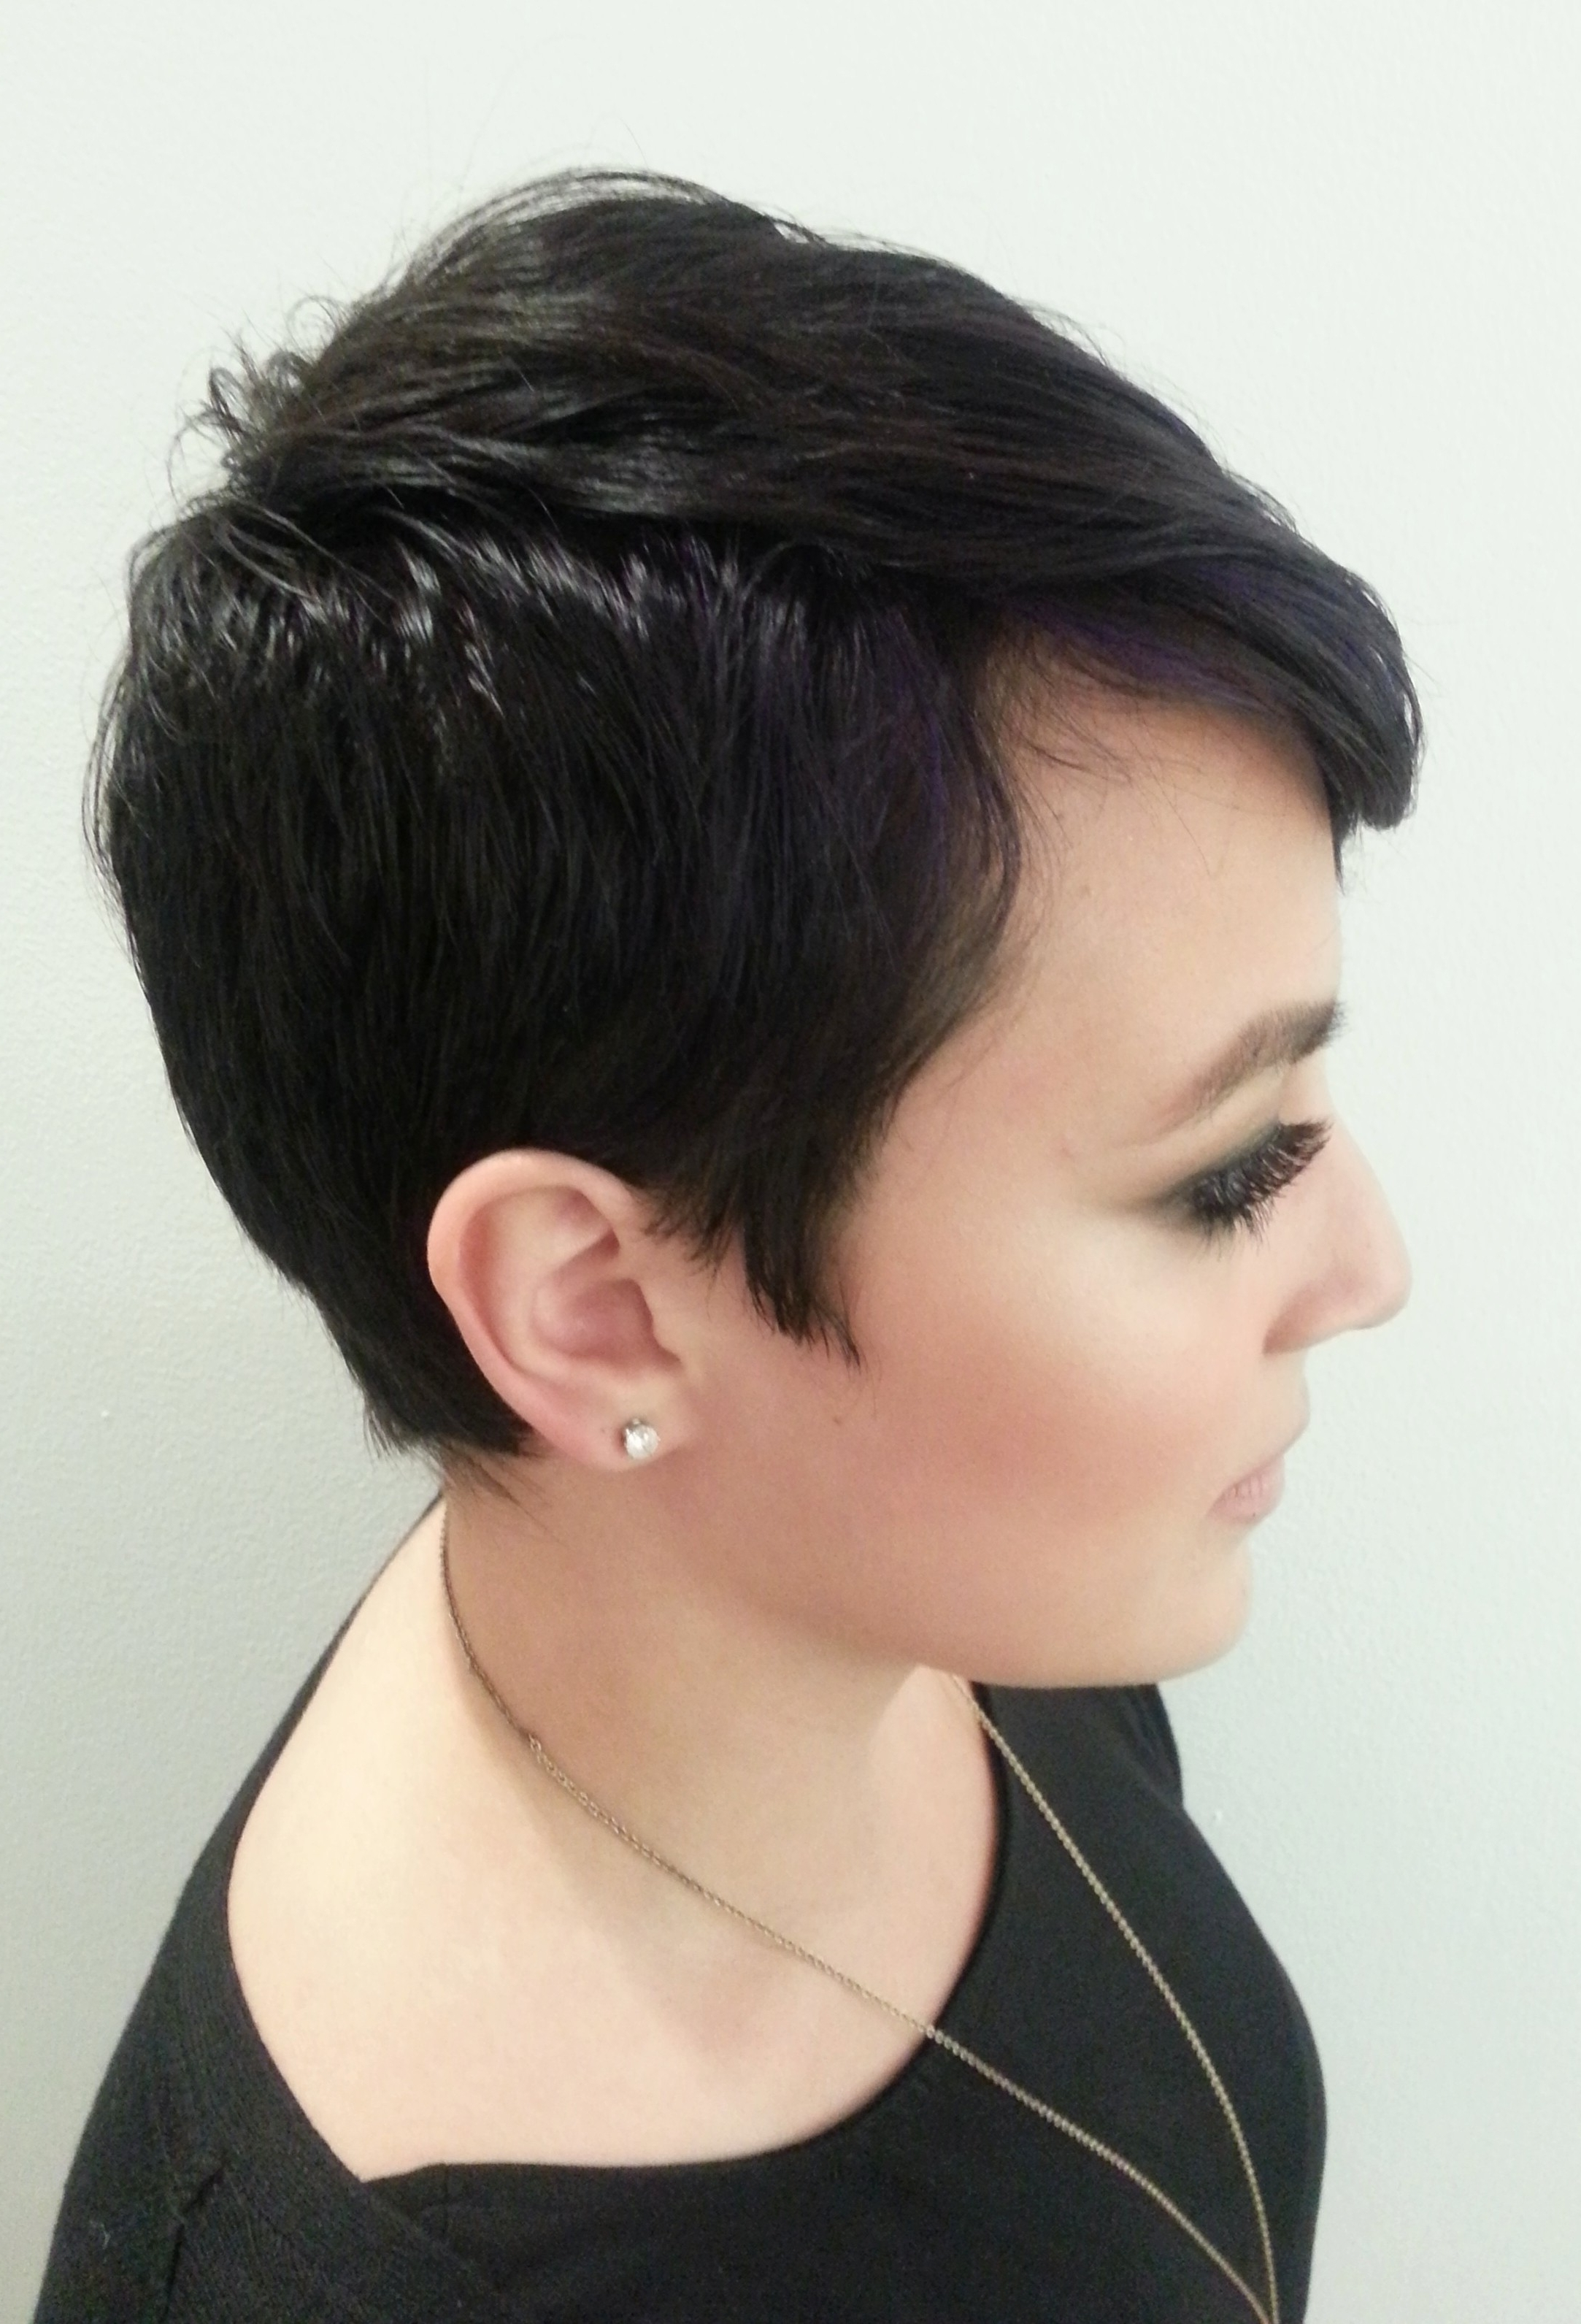 Explore Gallery of Pixie Hairstyles For Thick Curly Hair (Showing 10 ...